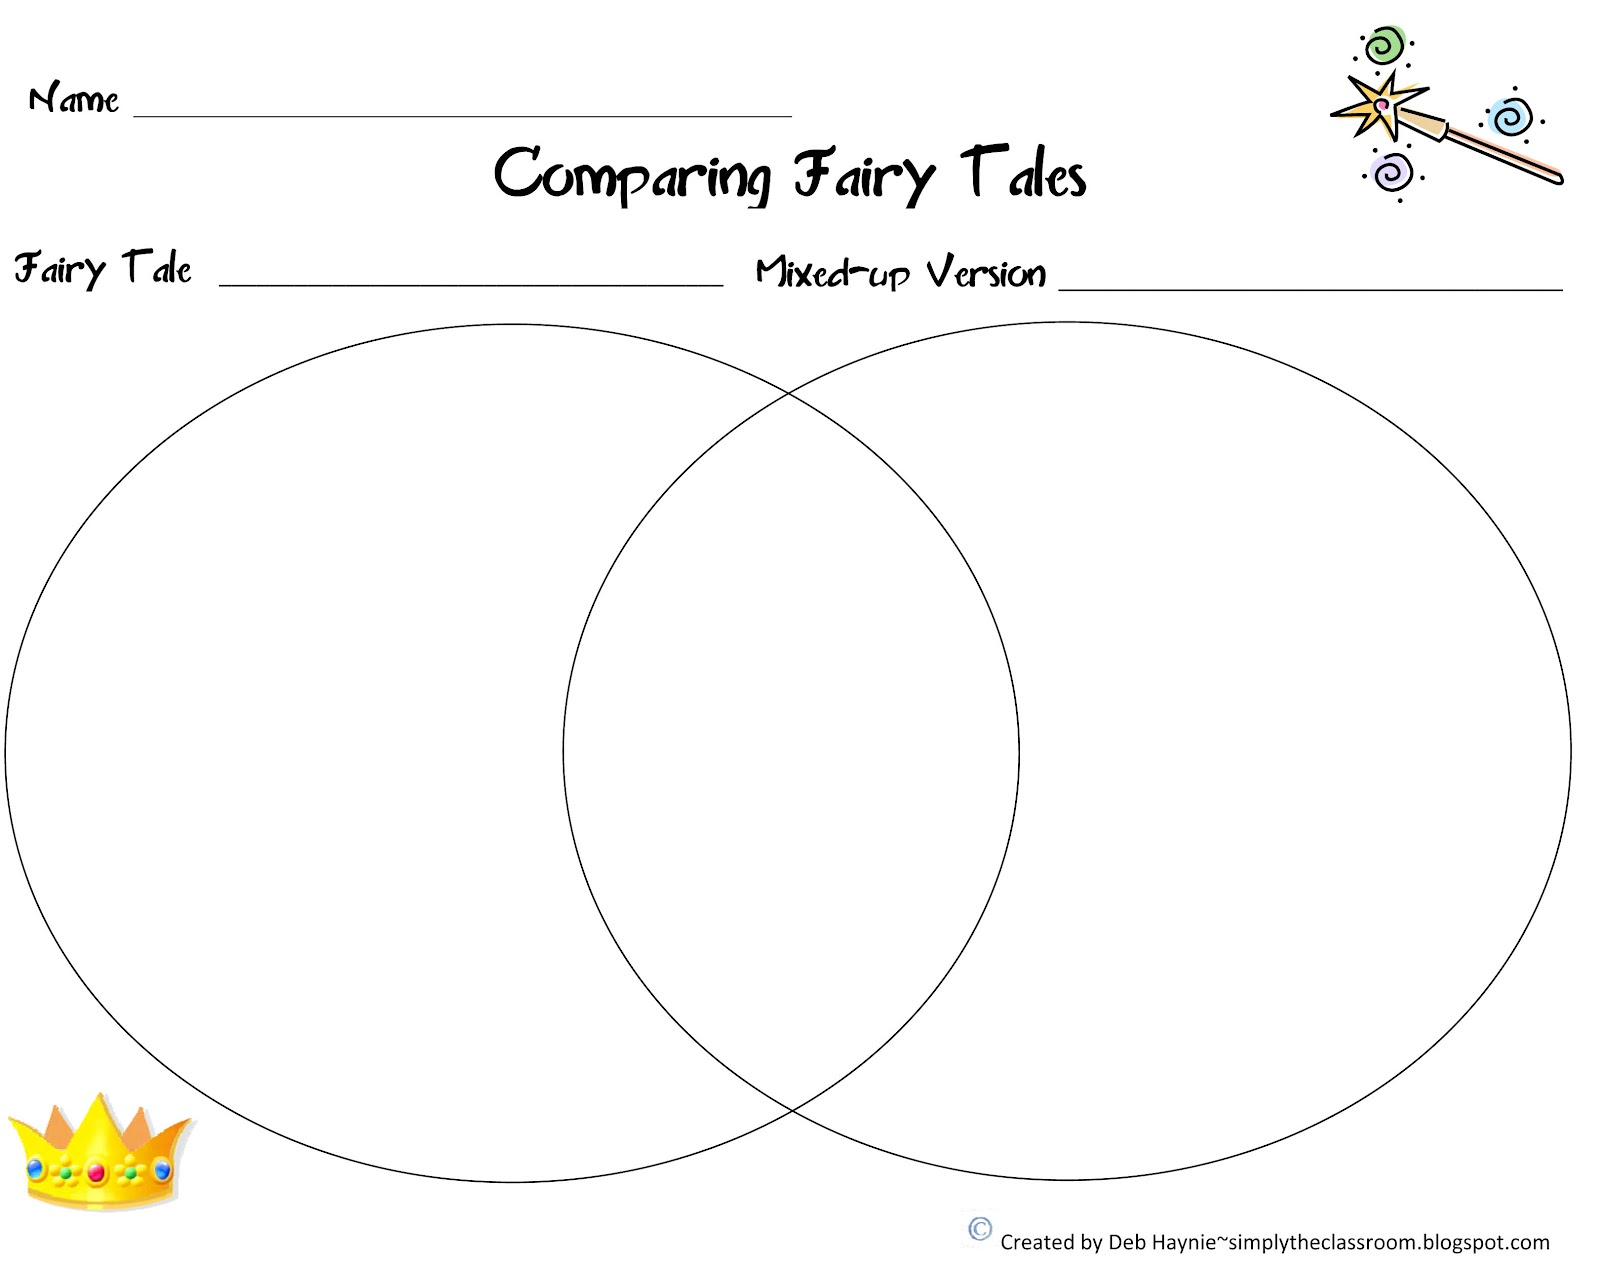 compare and contrast using venn diagram wiring for hot tub fairy tales are like the ocean